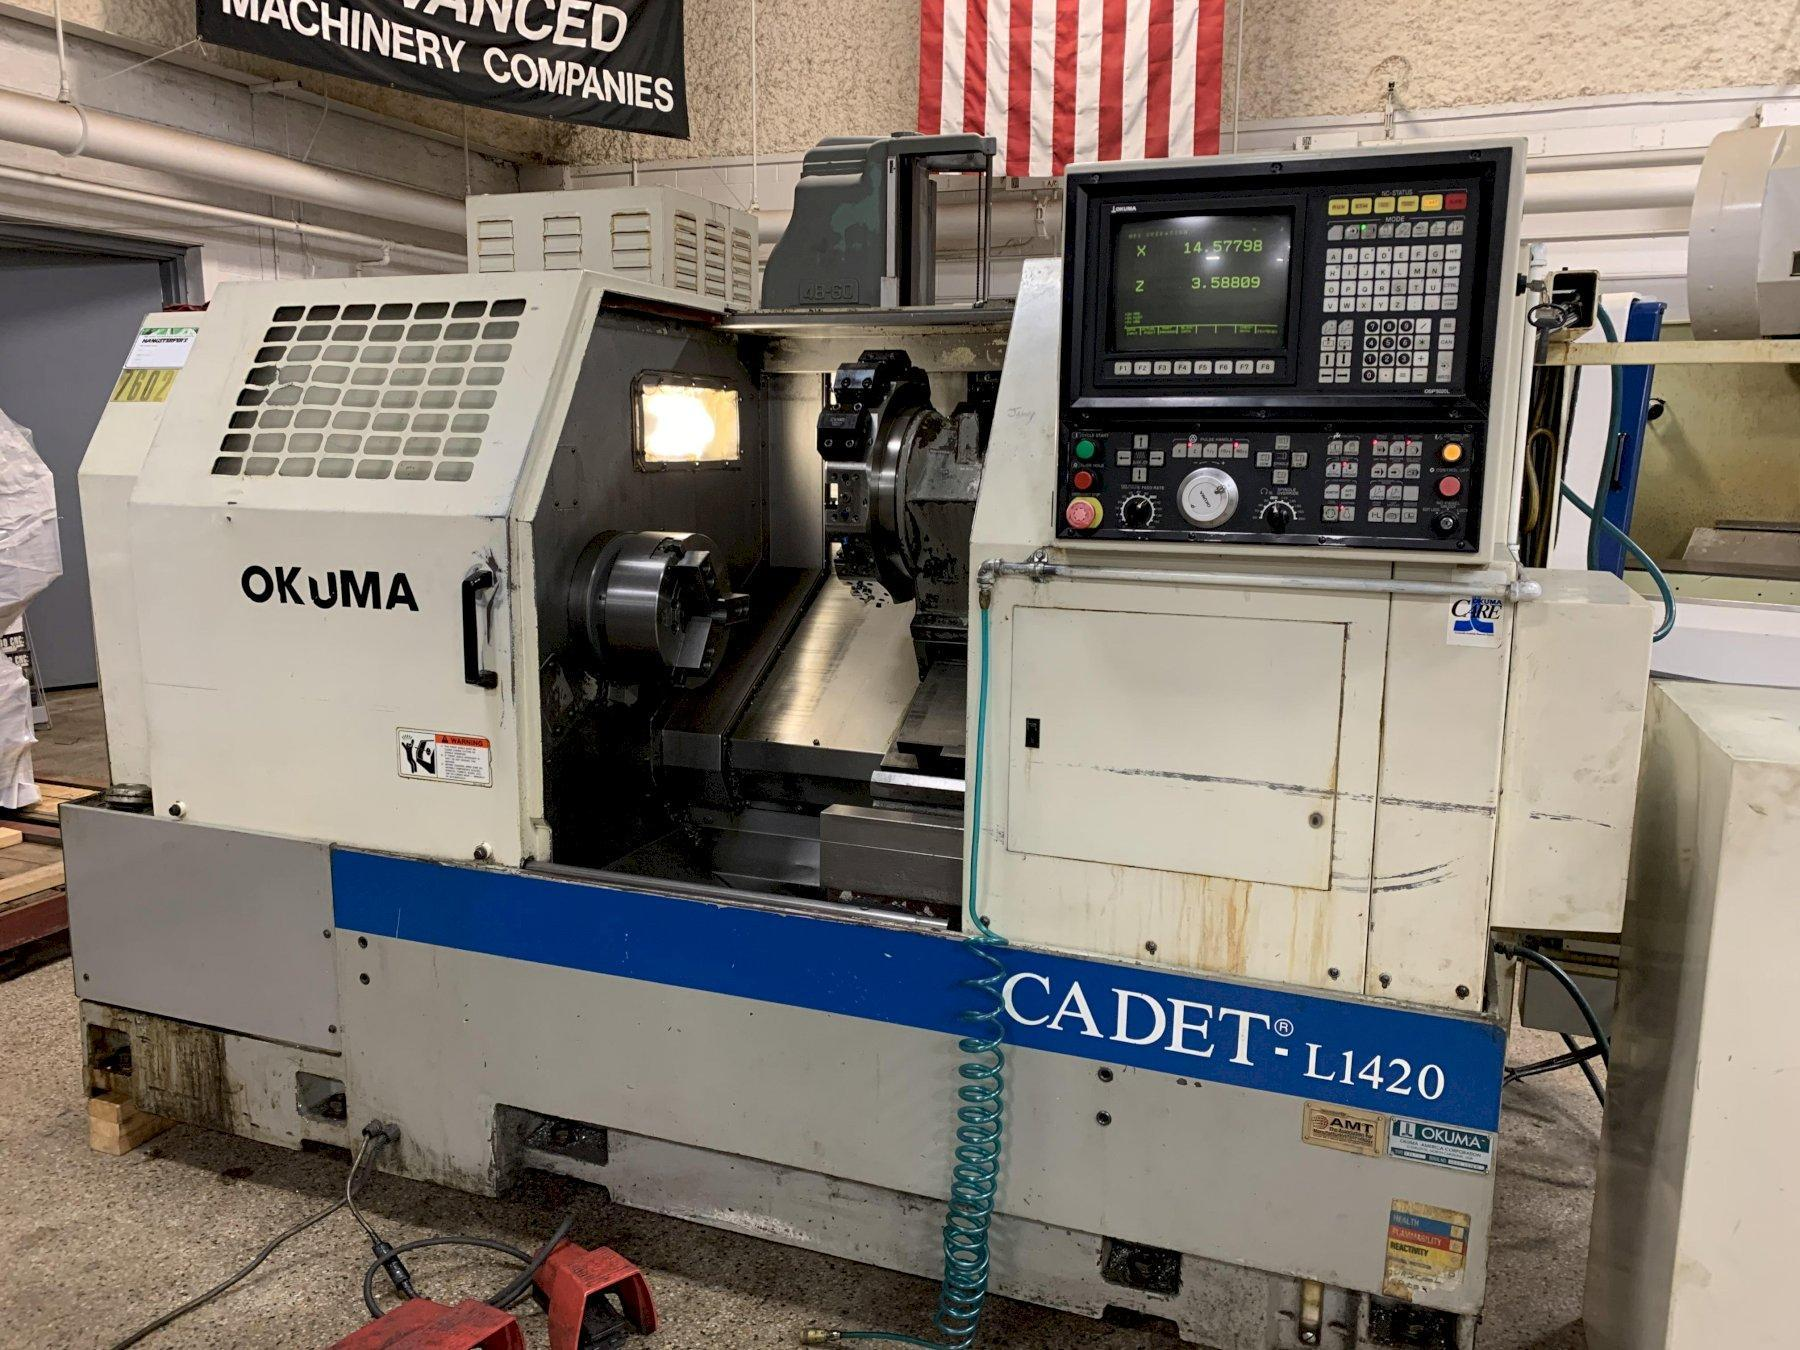 Okuma Cadet L1420 Turning Center, S/N 0178, New approx 1996.